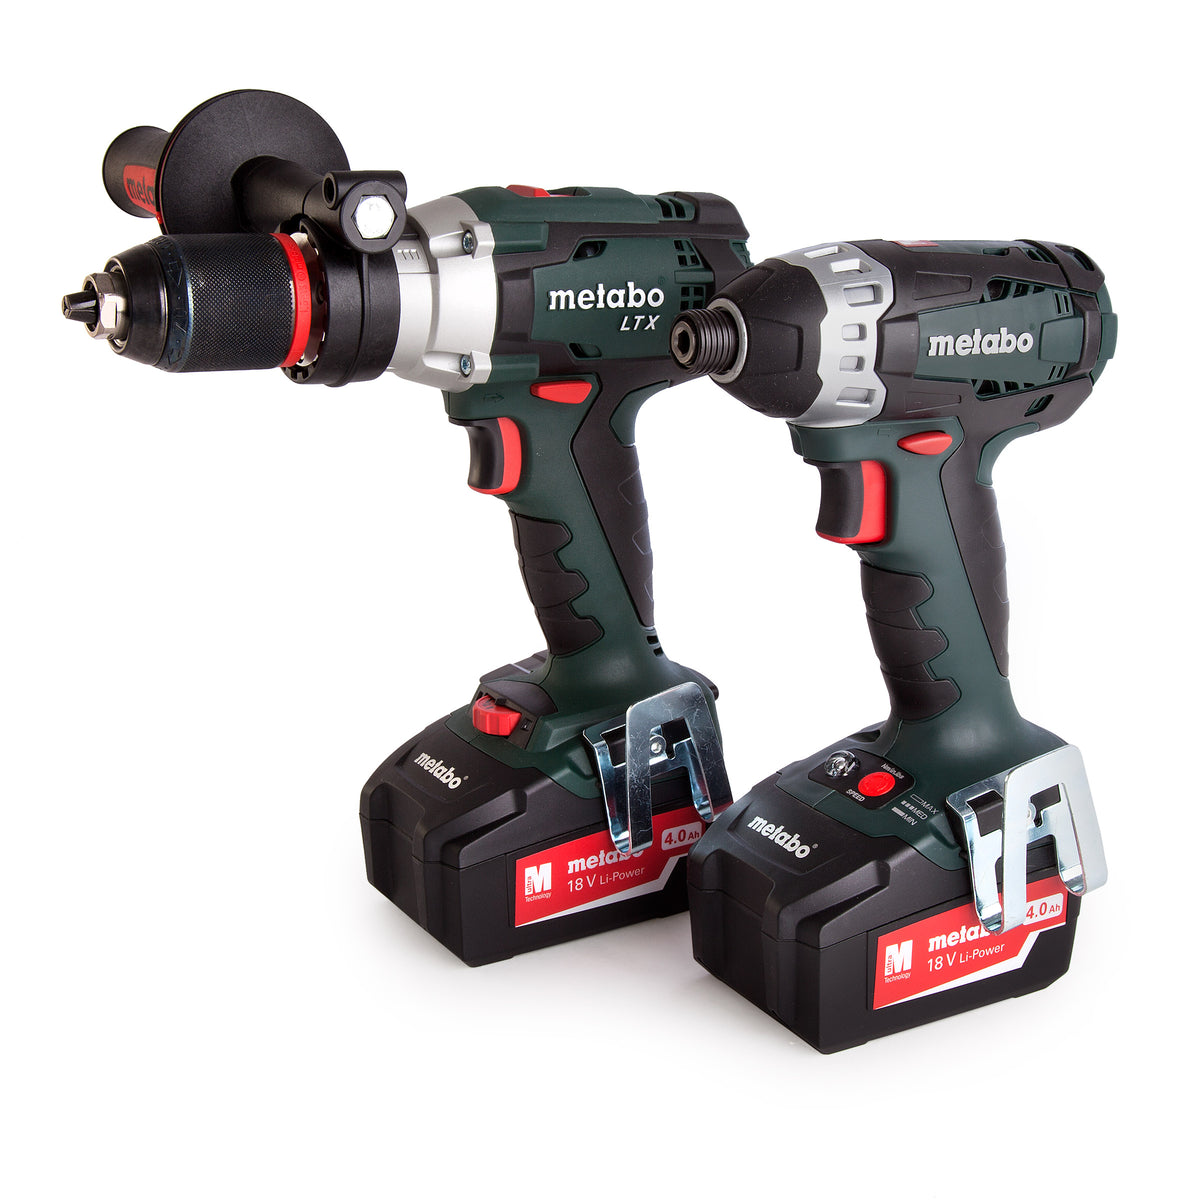 Metabo Mcwhirter Trade Supplies Cordless Angle Grinder W18 Ltx 125